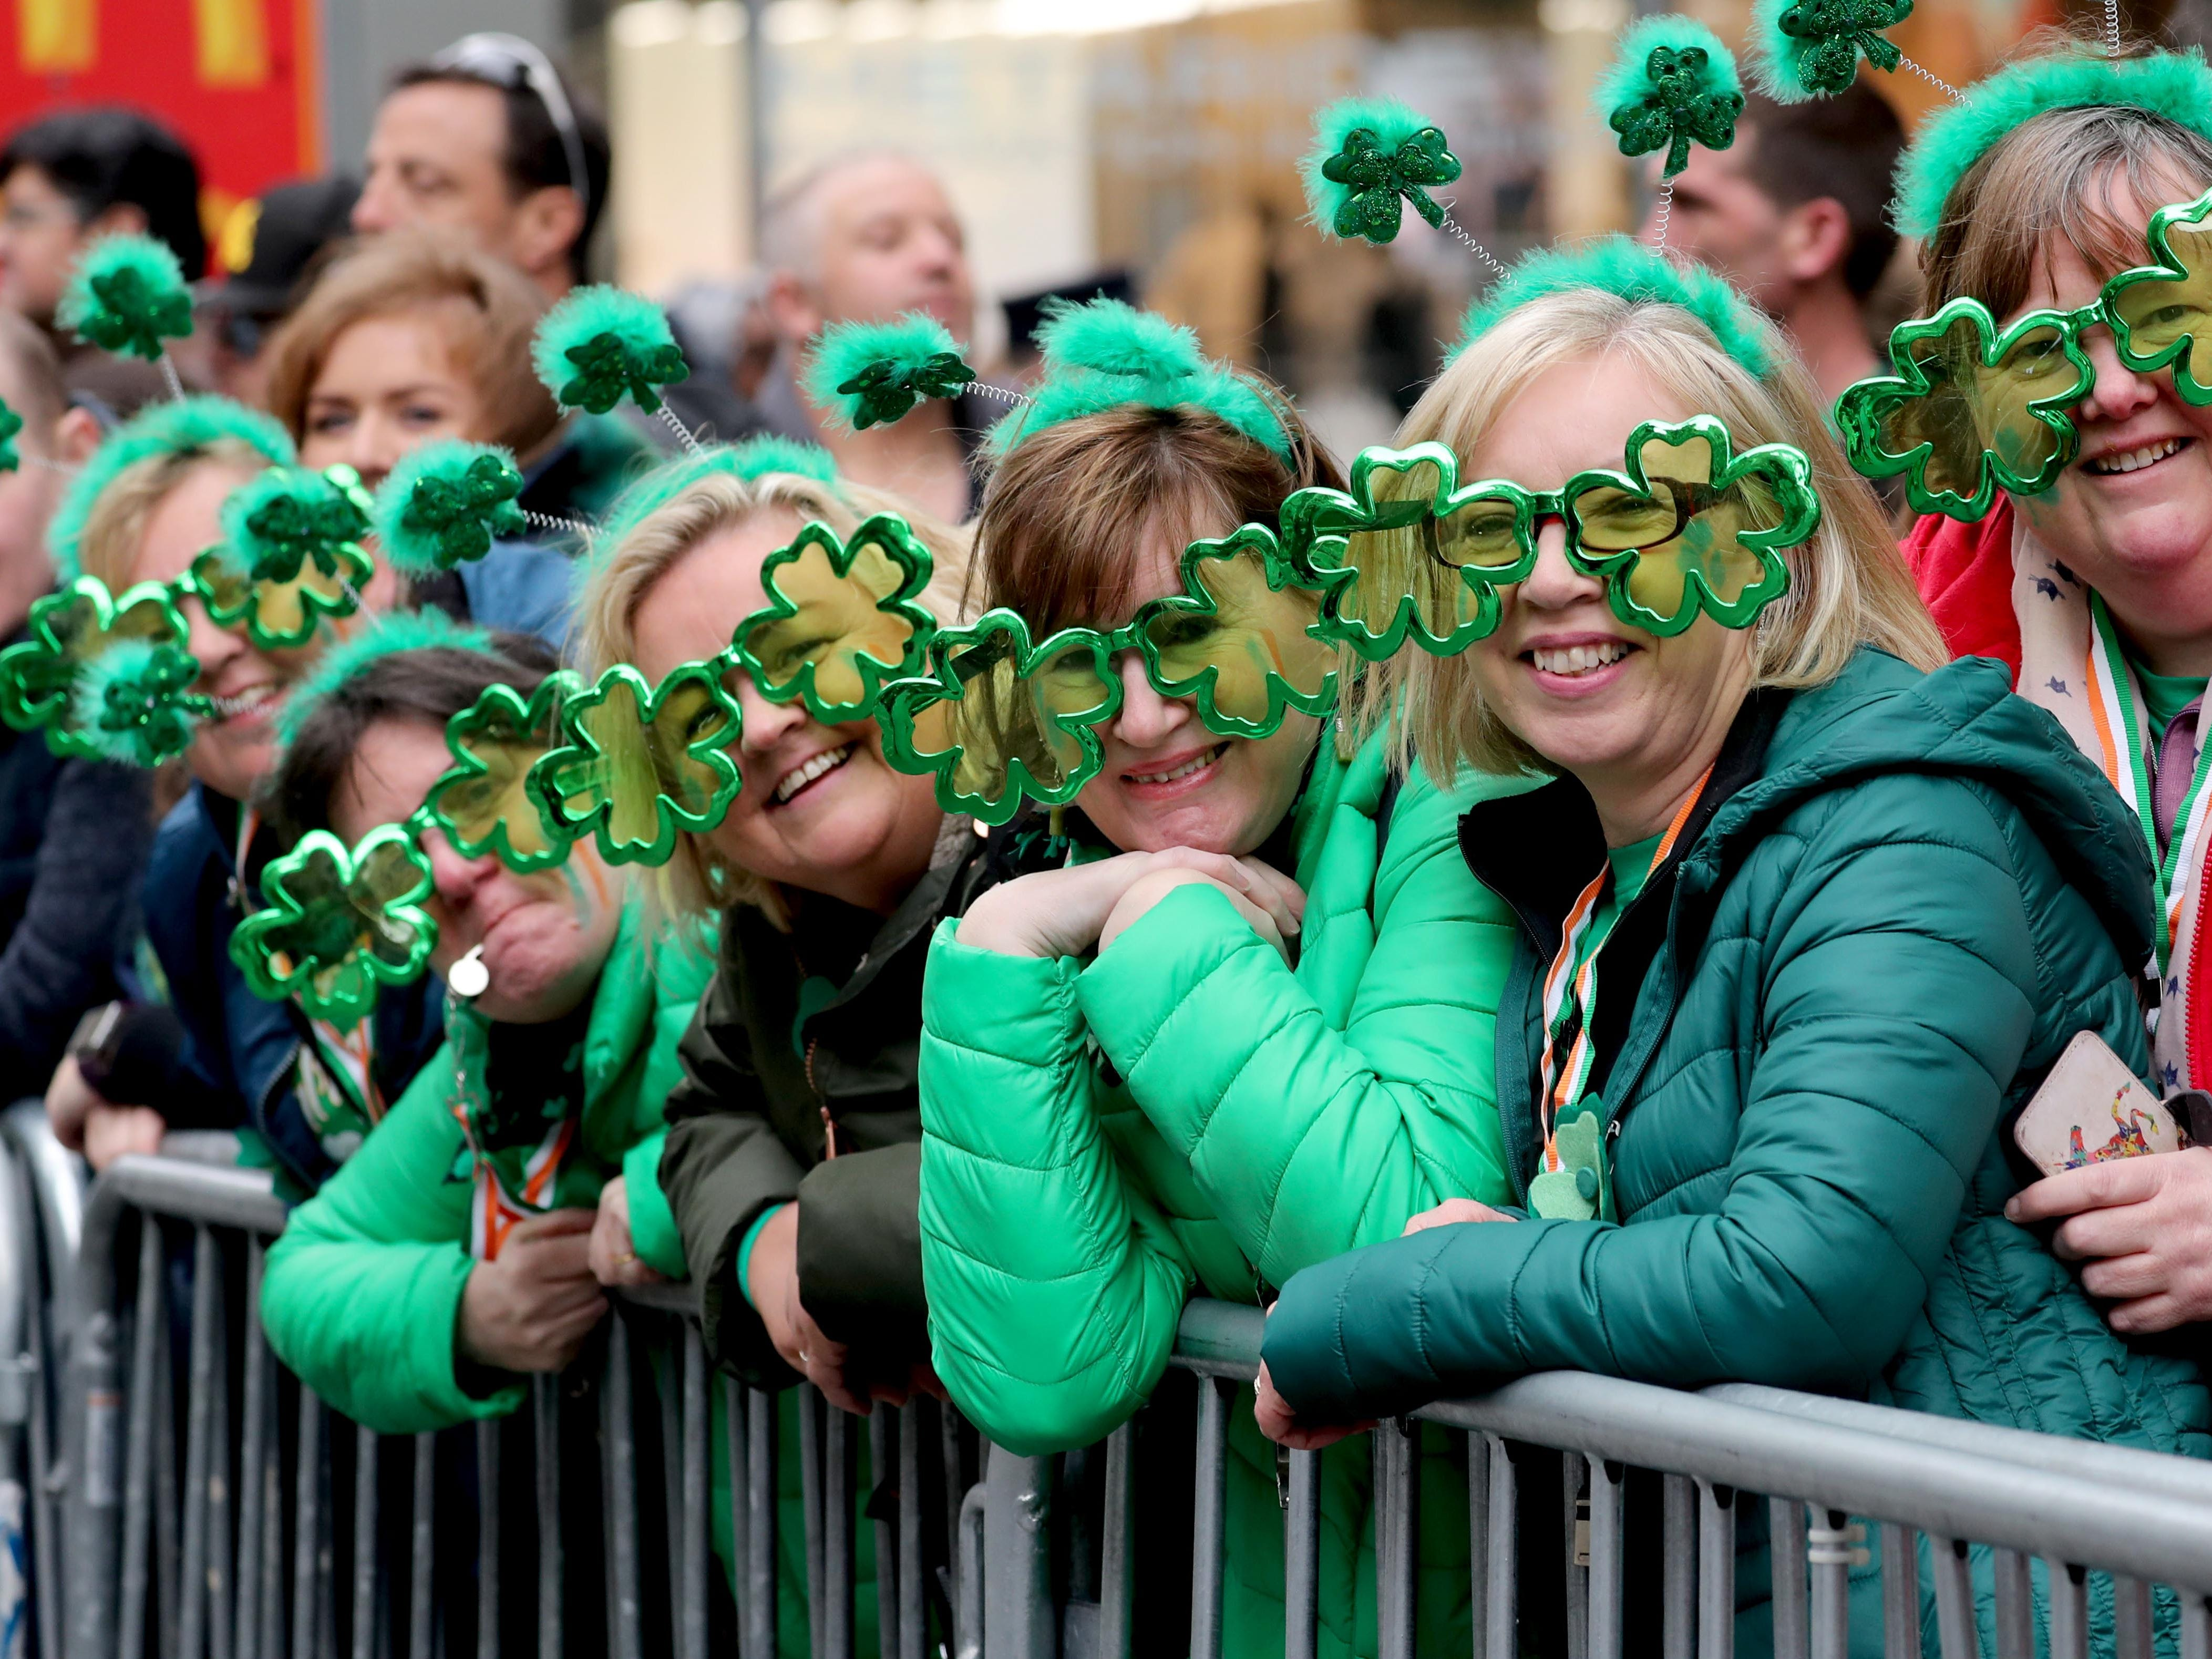 A group of women from Dublin, Ireland were among the many visitors from Ireland attending the 258th annual St. Patrick's Day Parade in New York City on March 16, 2019.